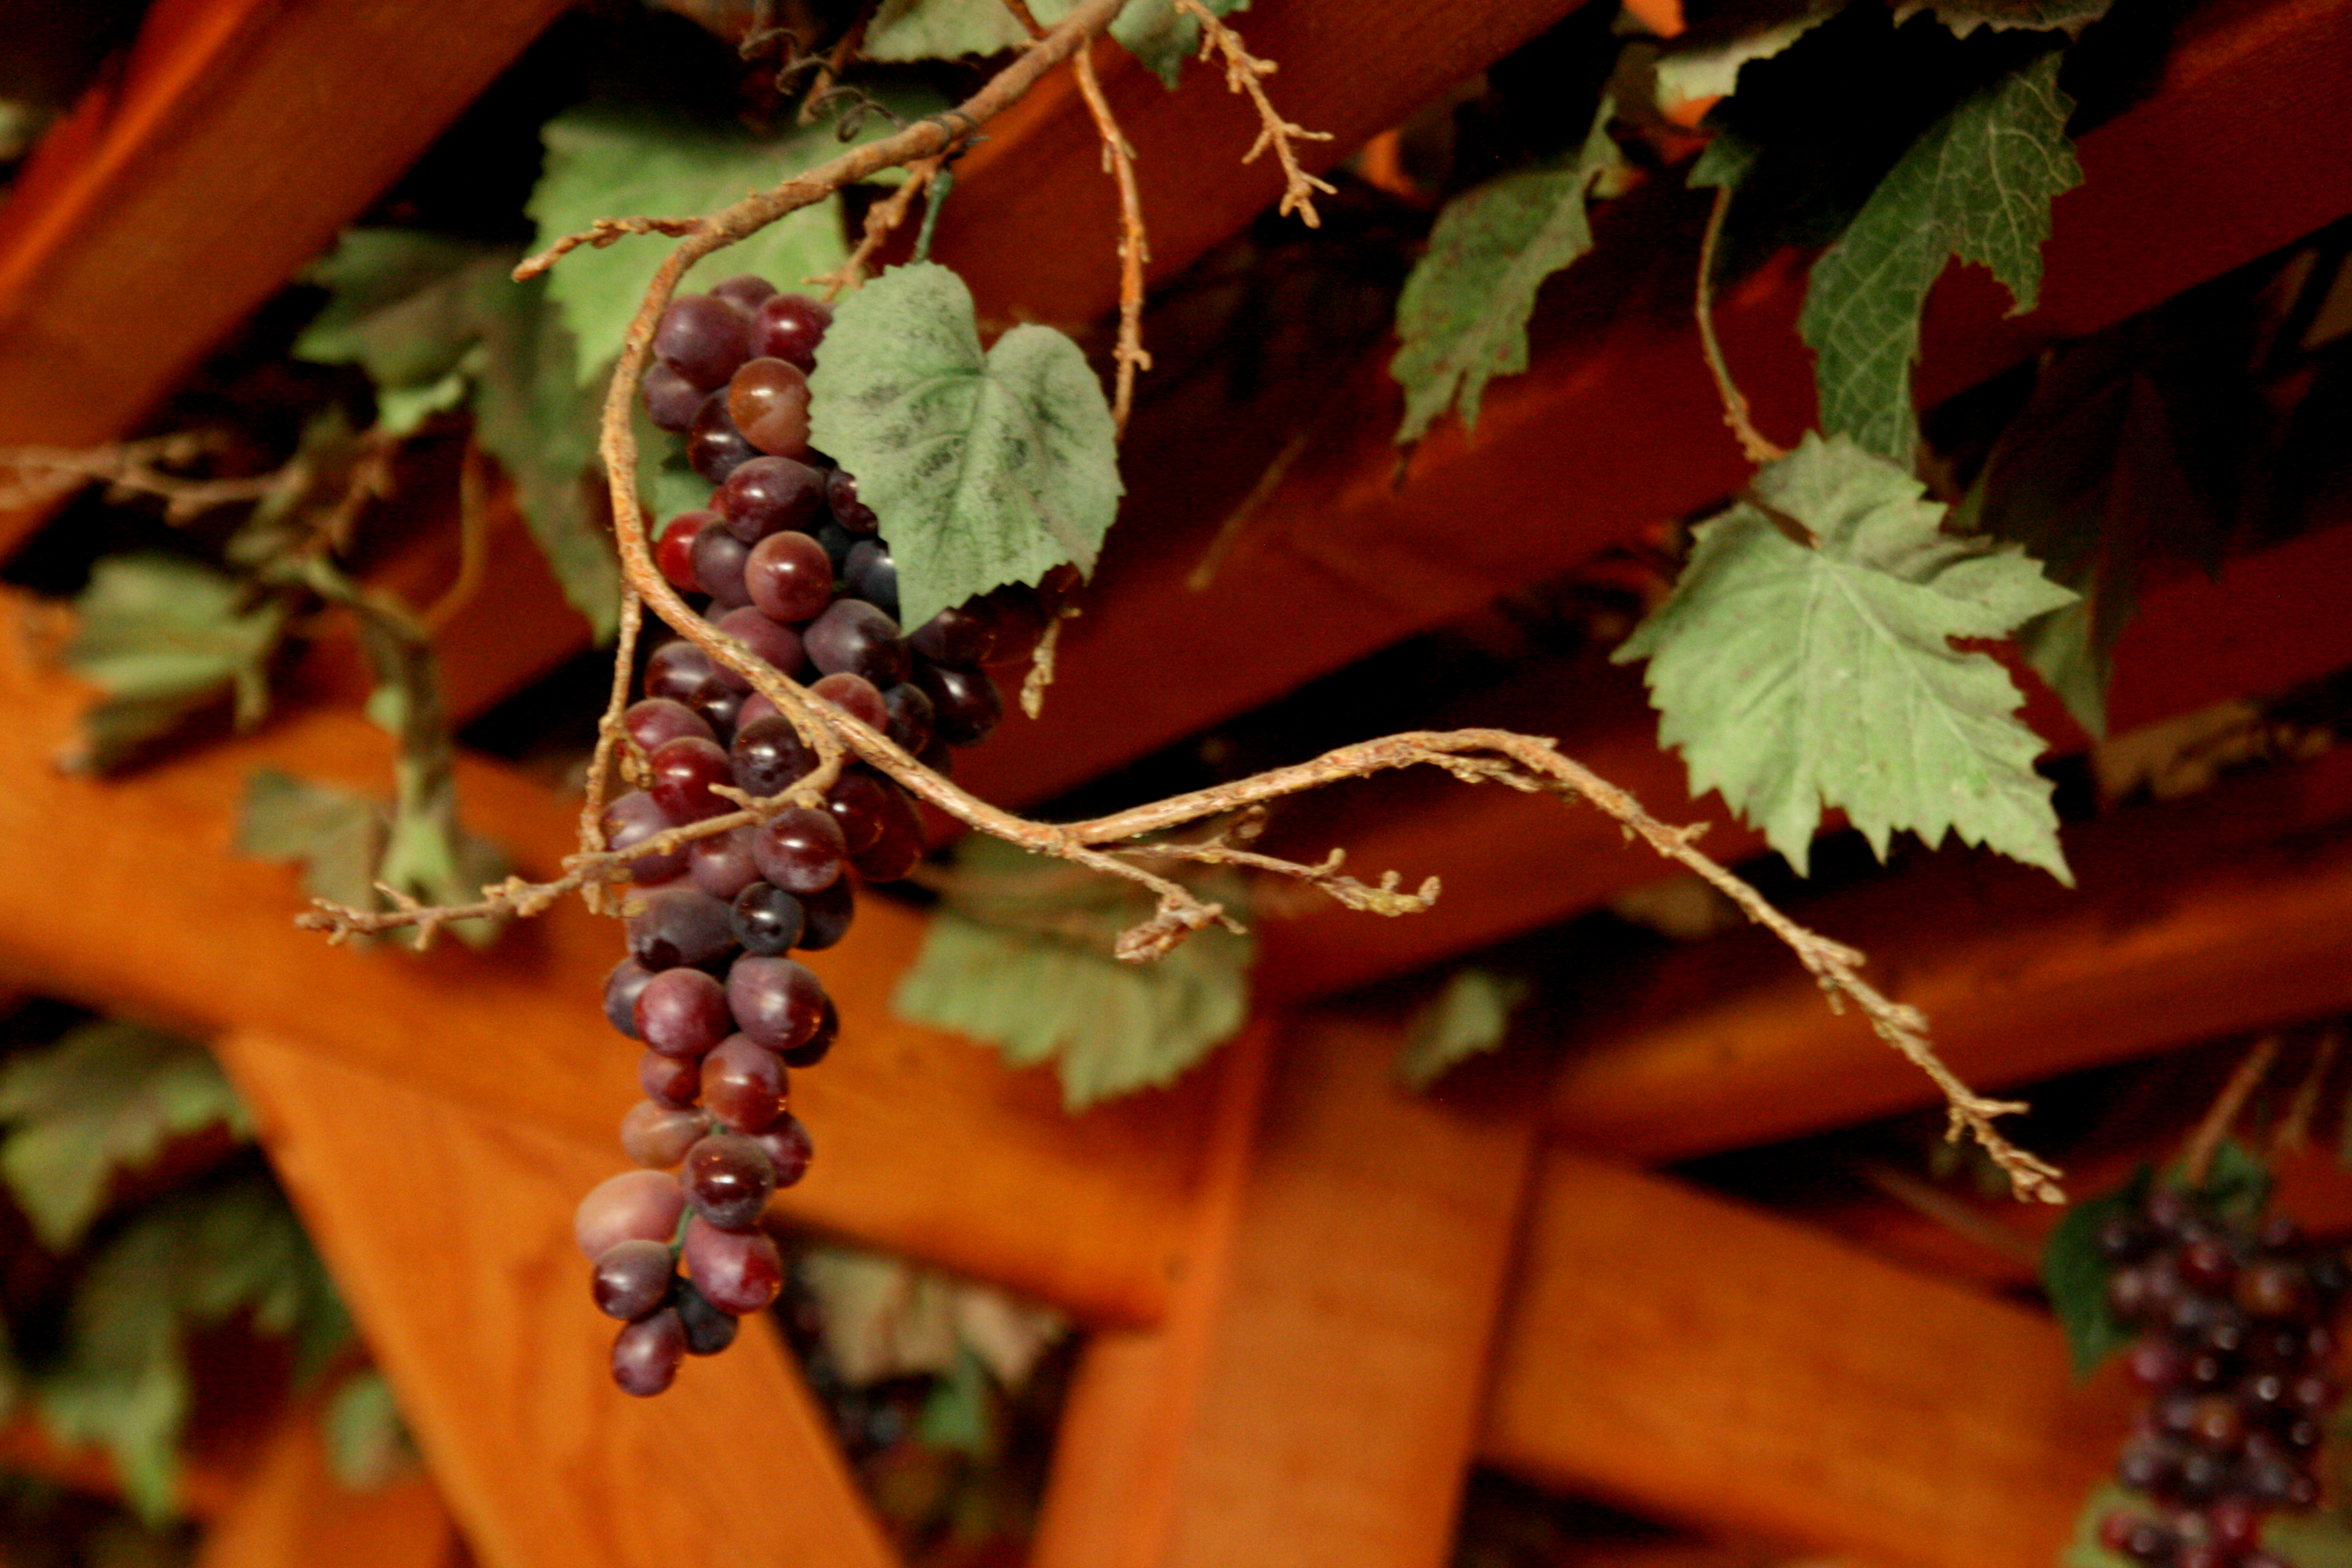 Fronimo's grape vine trellis